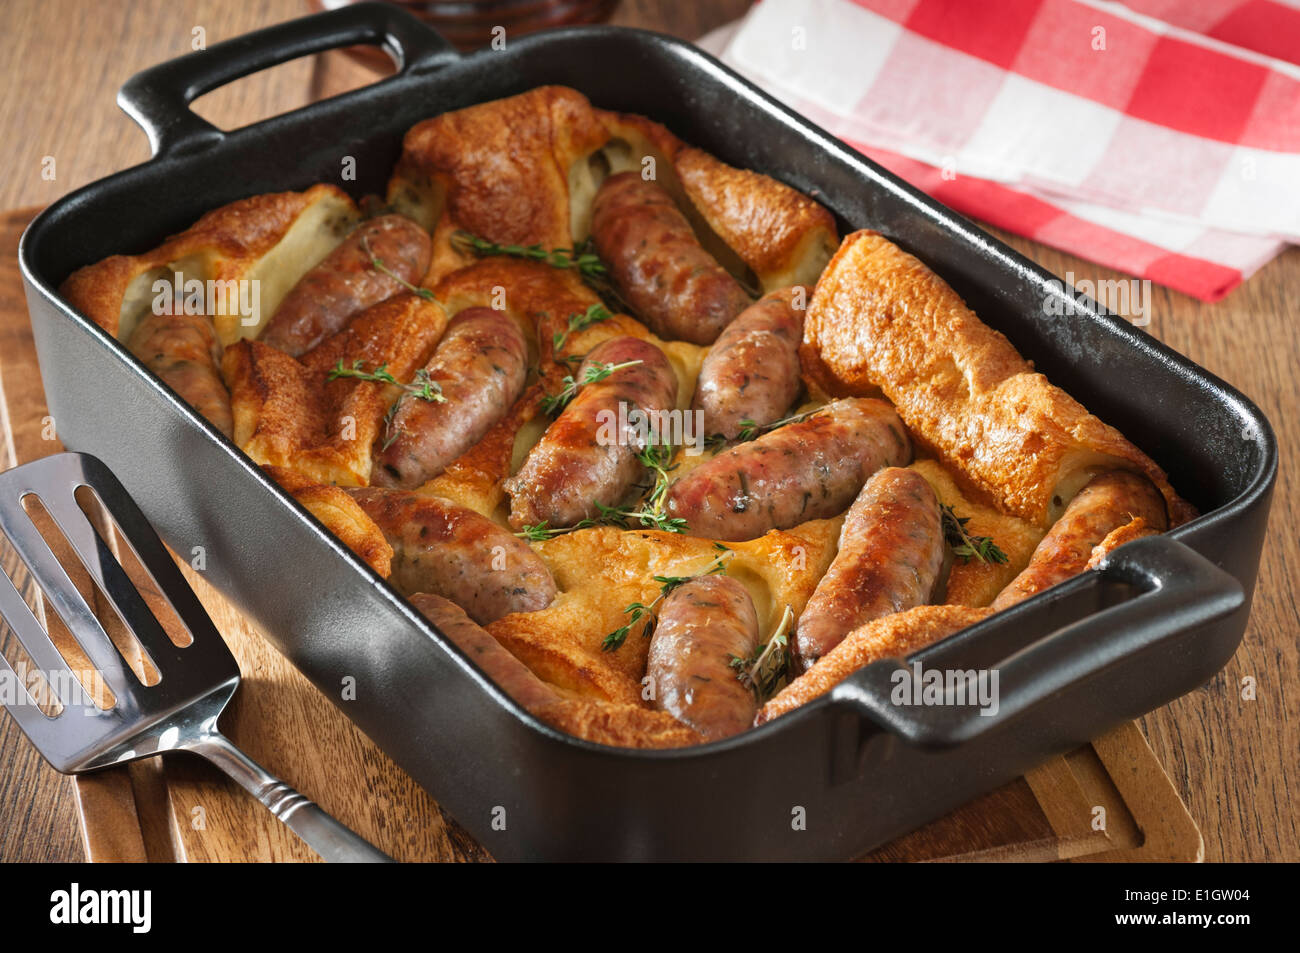 Toad in the hole. Sausages cooked in batter. UK Food - Stock Image